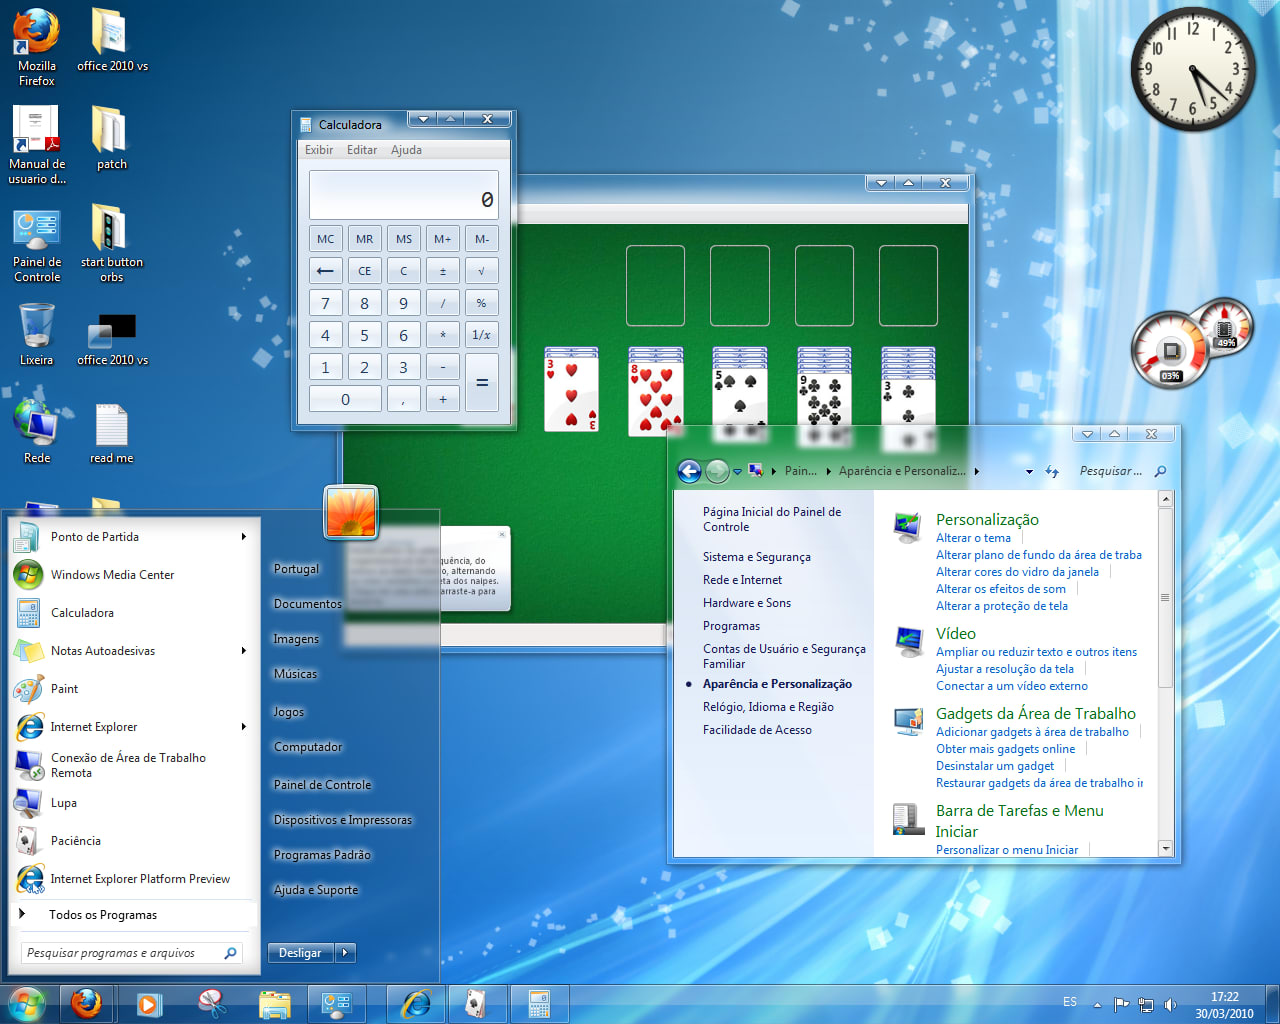 Tema Office 2010 VS for Windows 7